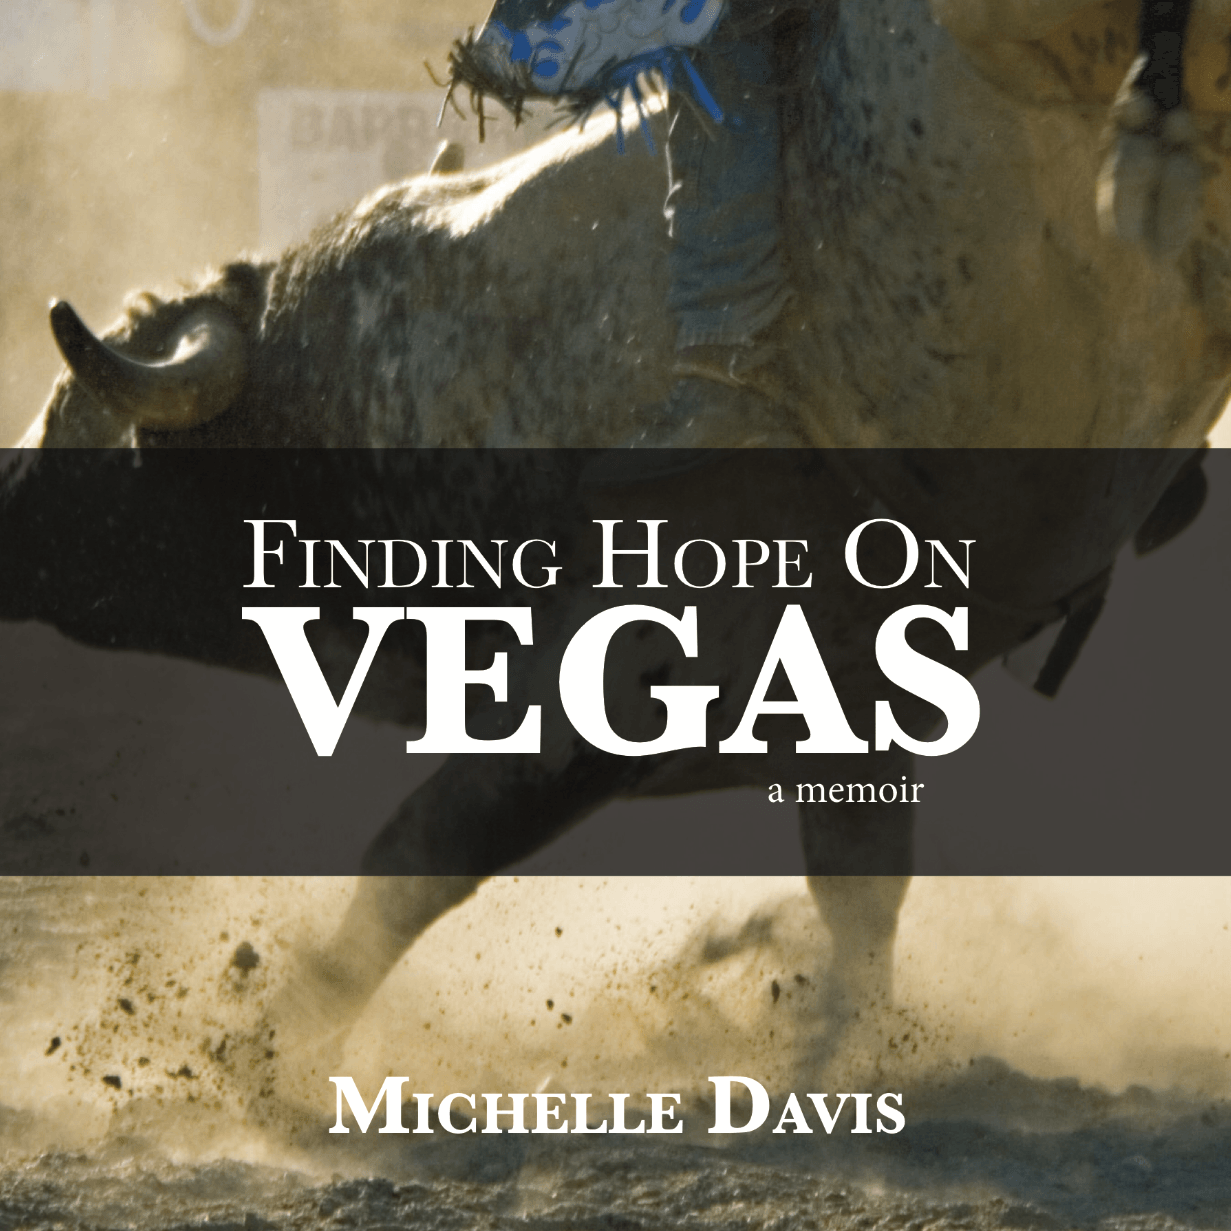 Finding Hope on Vegas